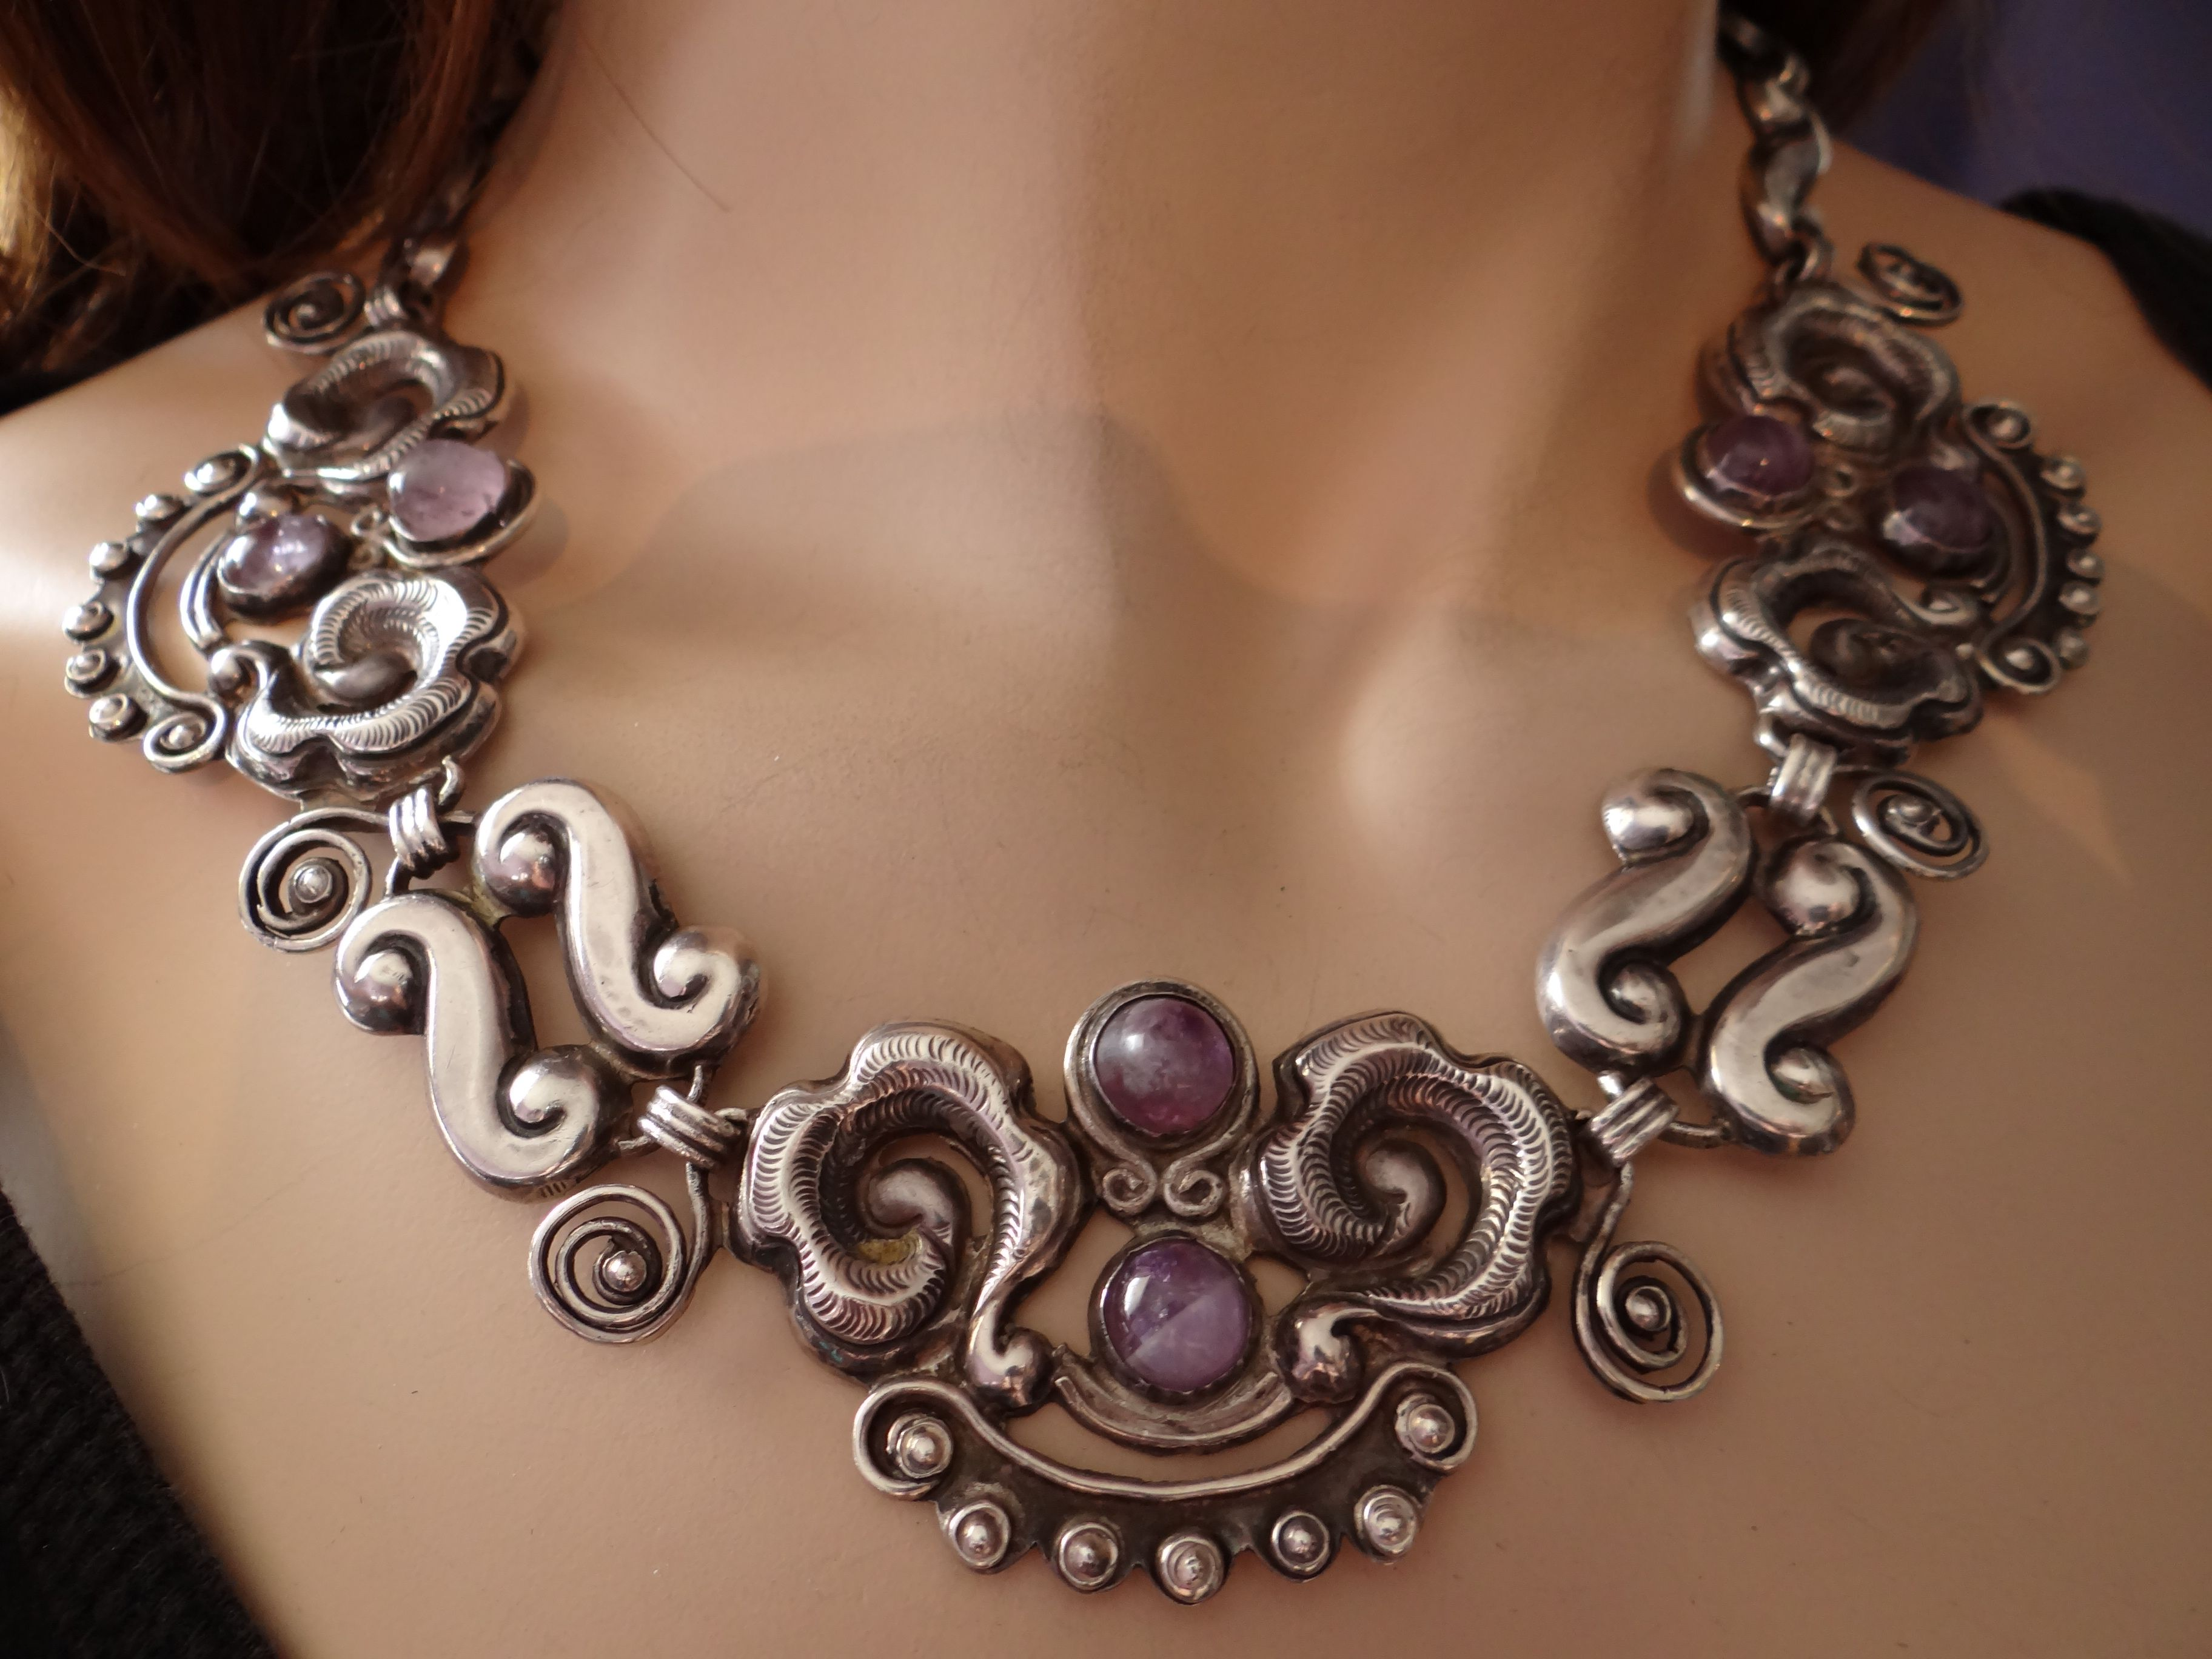 Spectacular Early Matl Amethyst Necklace Vintage Silver Jewelry Mexican Silver Jewelry Silver For Jewelry Making